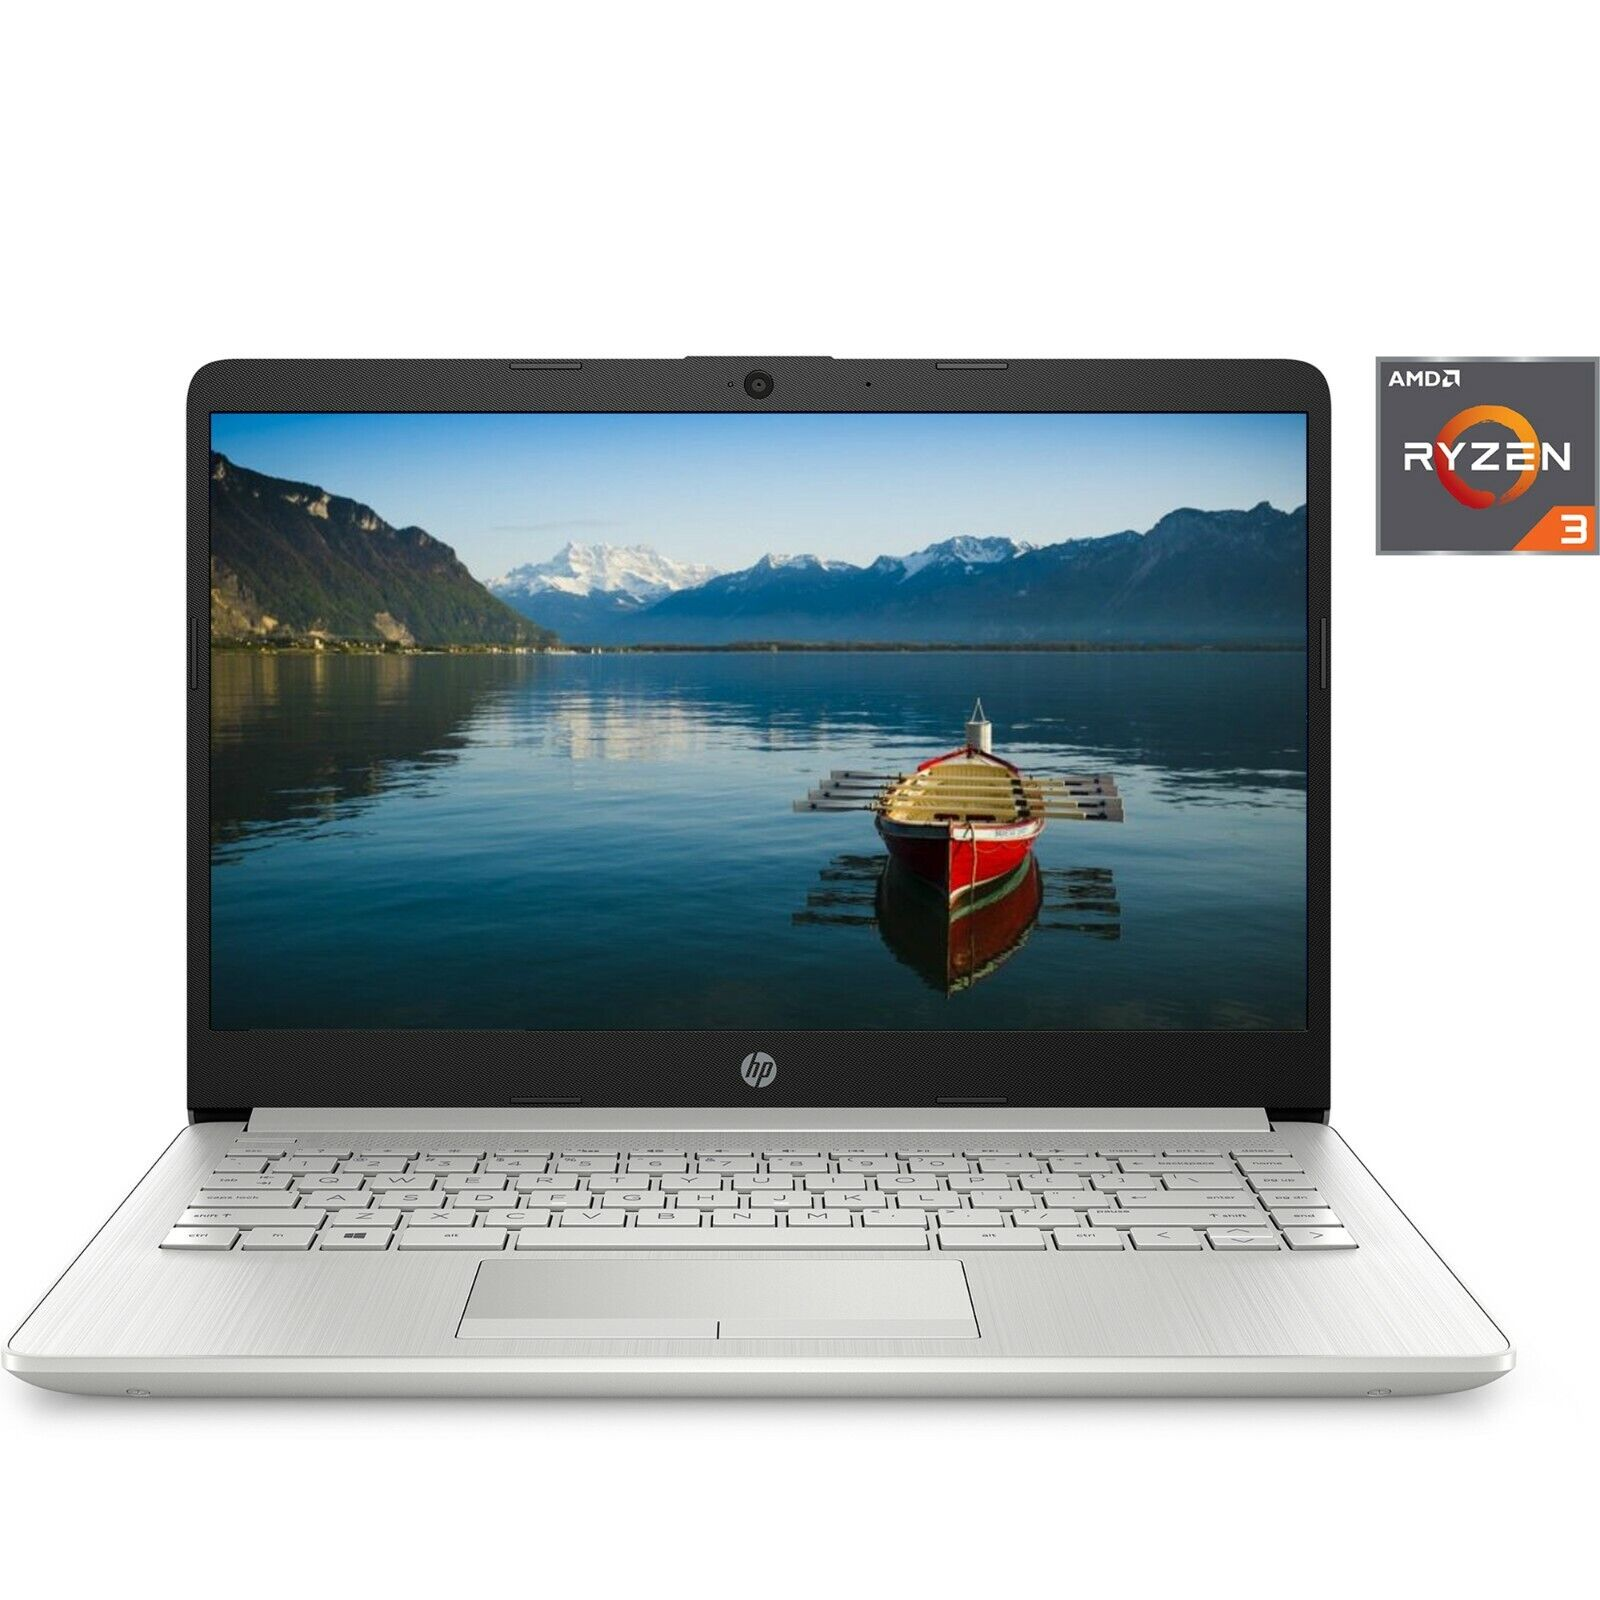 "Laptop Windows - NEW HP 14"" HD laptop AMD Ryzen 3 3.5GHz 128GB SSD 4GB RAM Mic Webcam Windows 10"